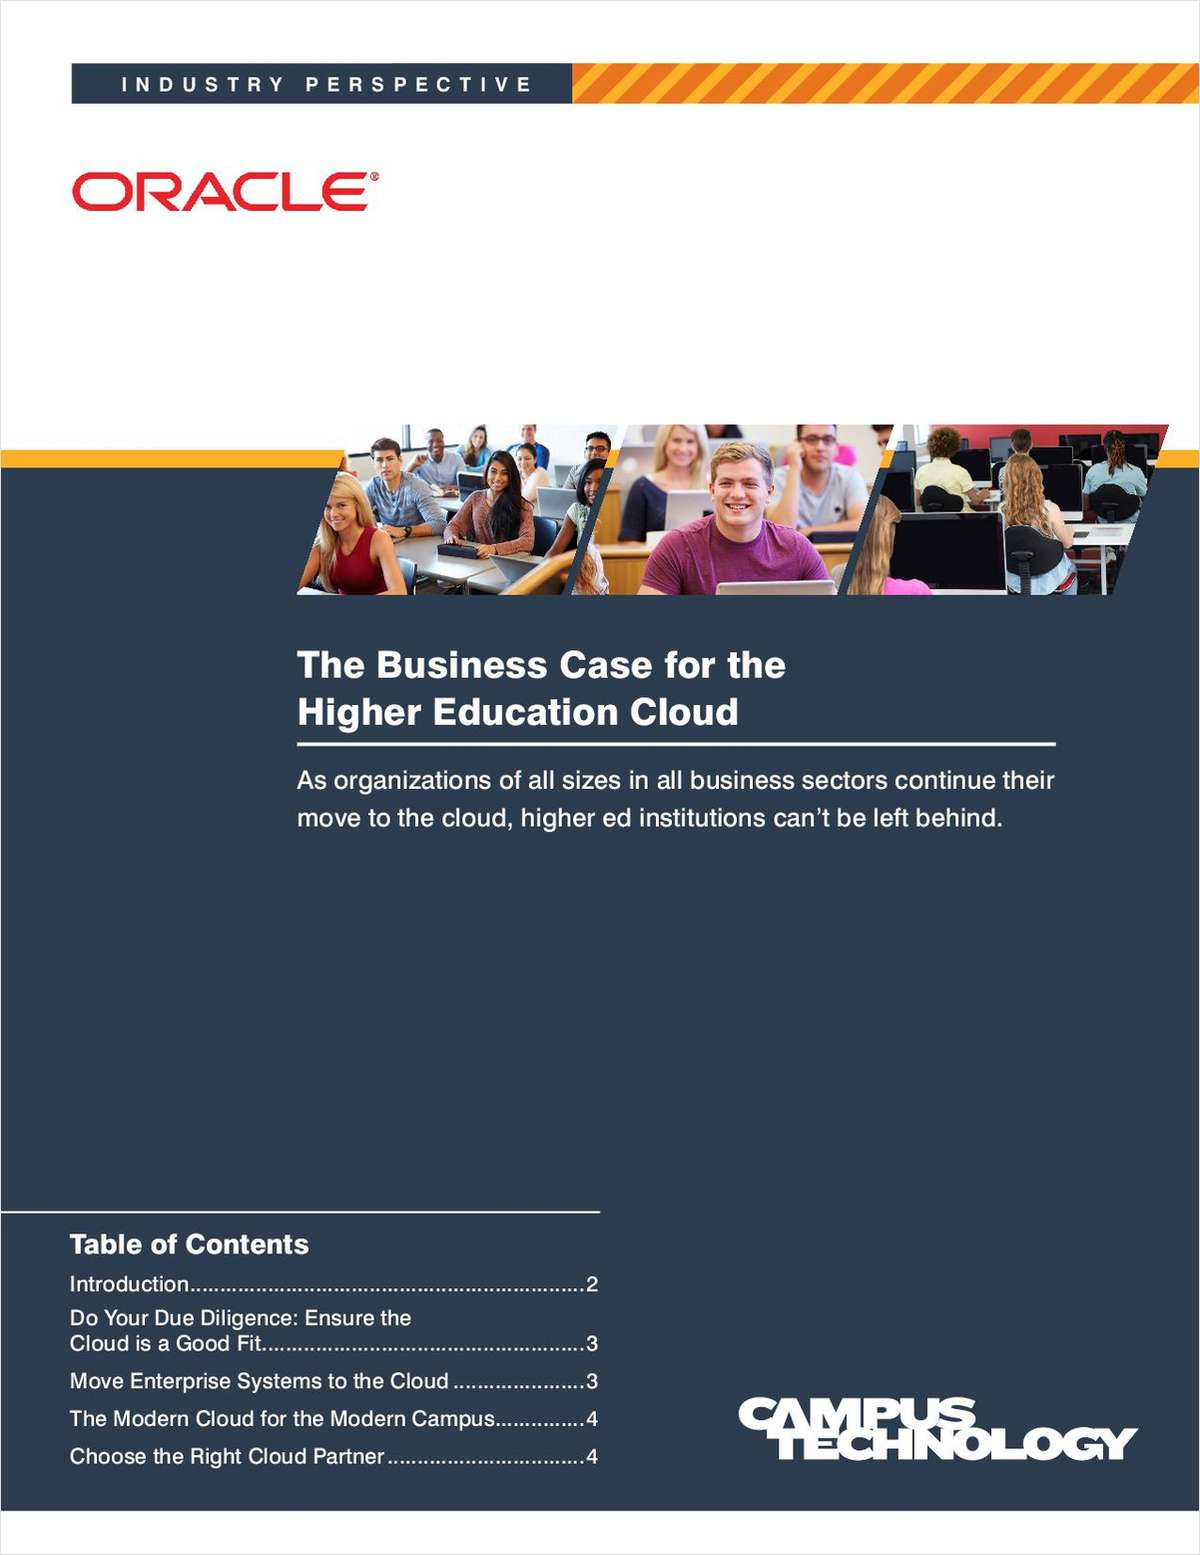 The Business Case for the Higher Education Cloud